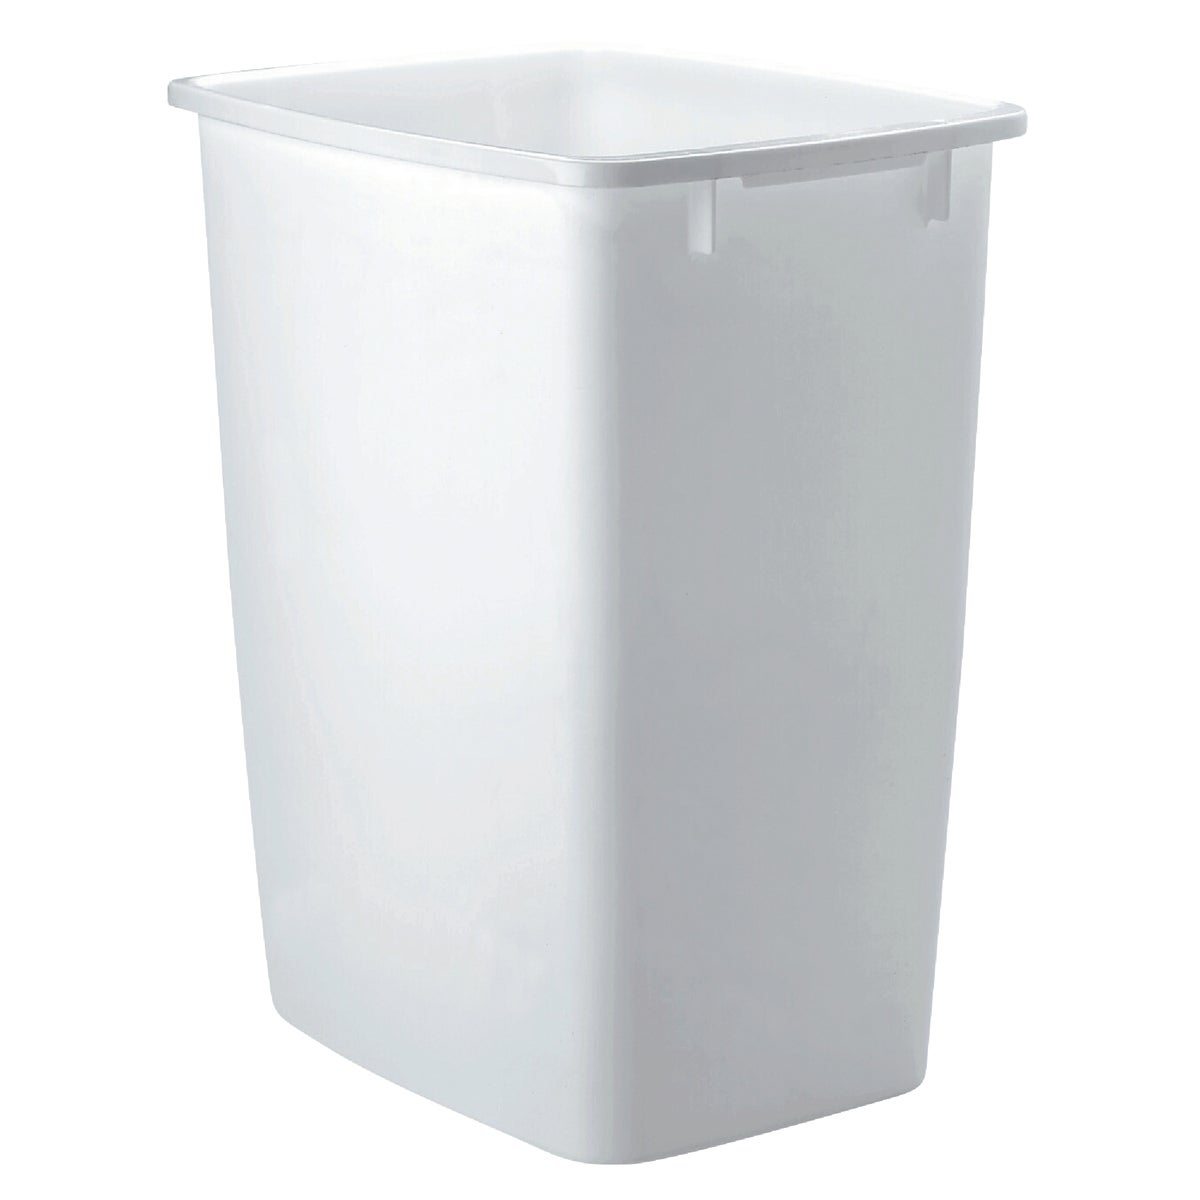 35QT WHITE WASTEBASKET - 2806TP-WHT by Rubbermaid Home